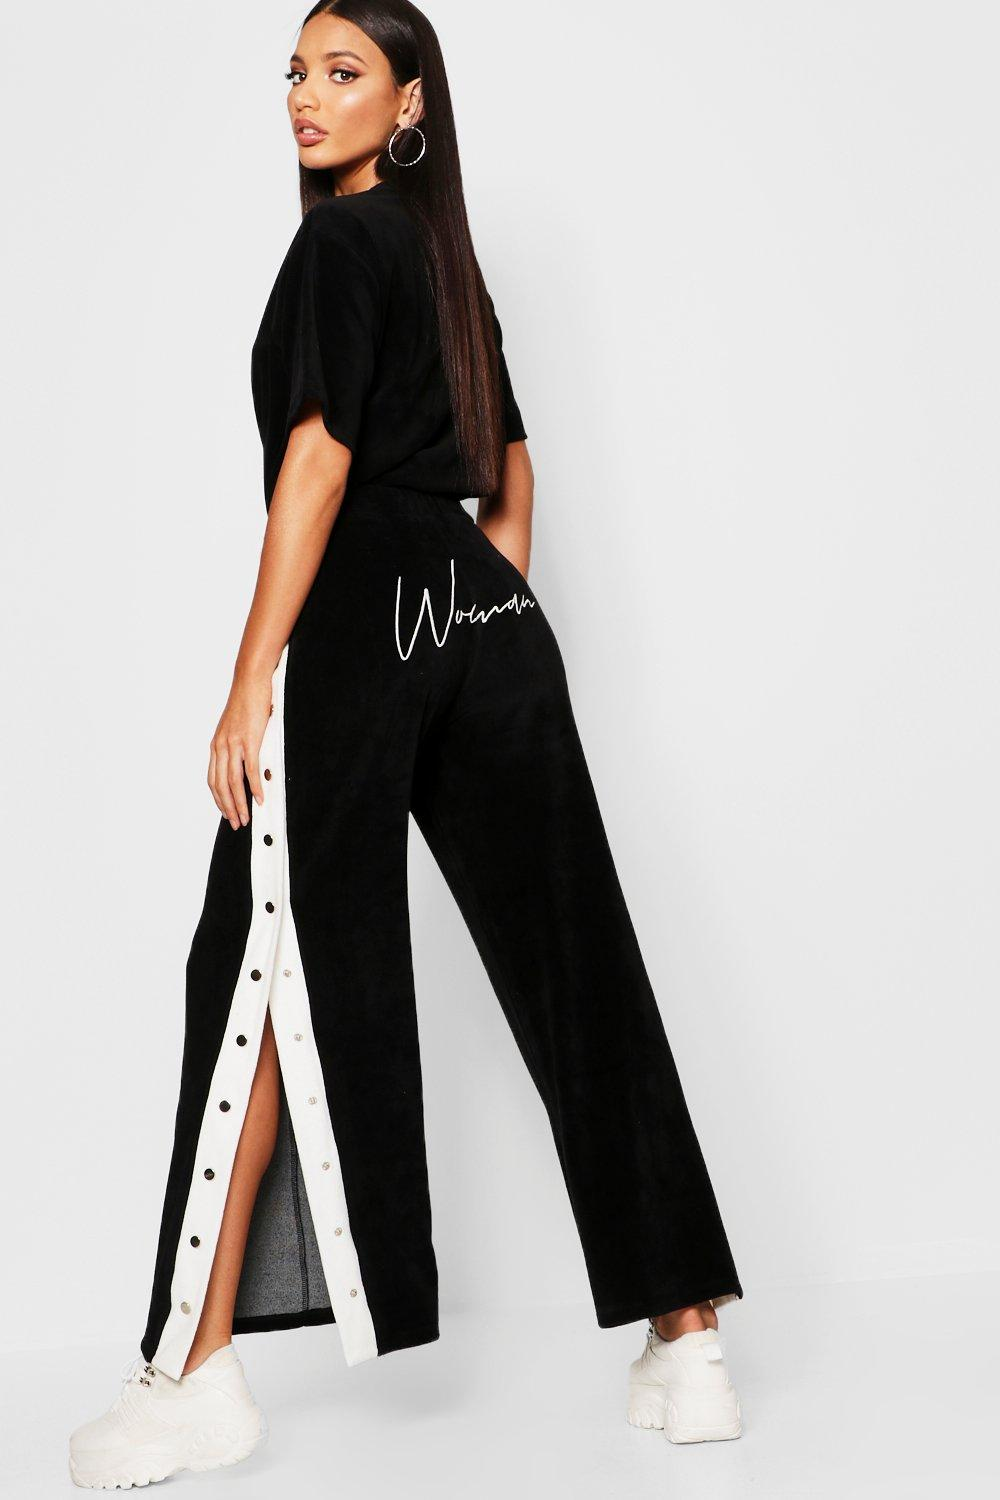 Velour Woman Embroidered Wide Leg Trouser